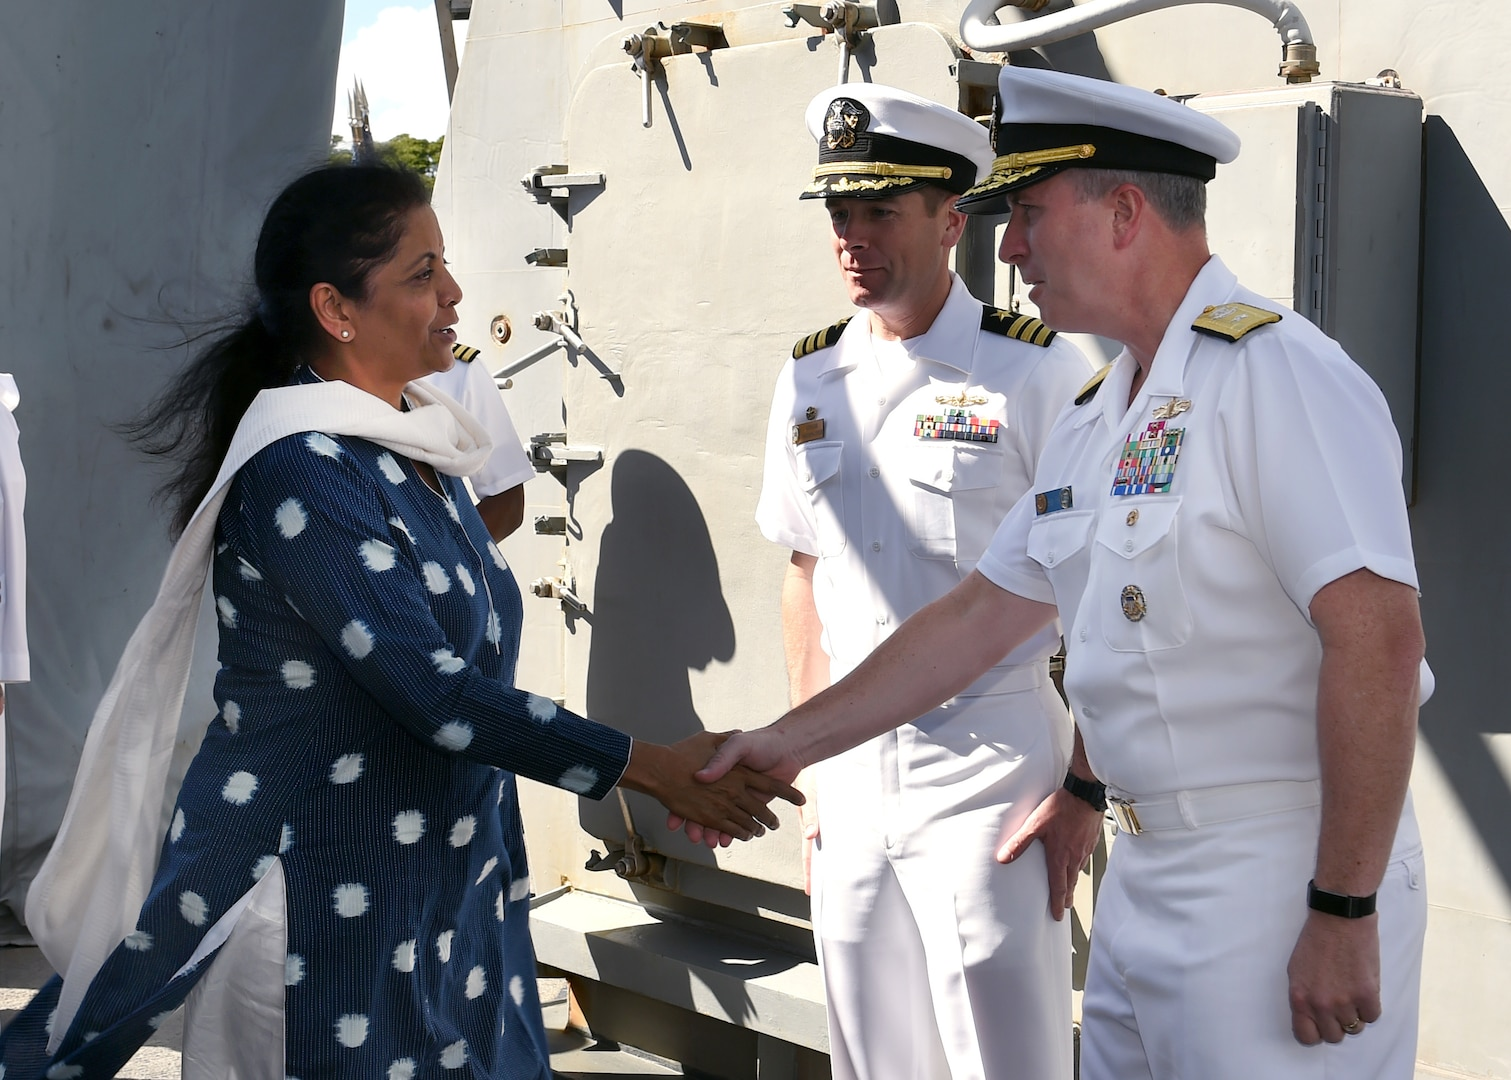 India's Defence Minister Nirmala Sitharaman is greeted by Rear Adm. Brian Fort, Commander, Navy Region Hawaii and Naval Surface Group Middle Pacific, before touring USS Michael Murphy (DDG 112). India and the U.S. are global partners in defense and security and are working together to assure a free and open Indo-Pacific.